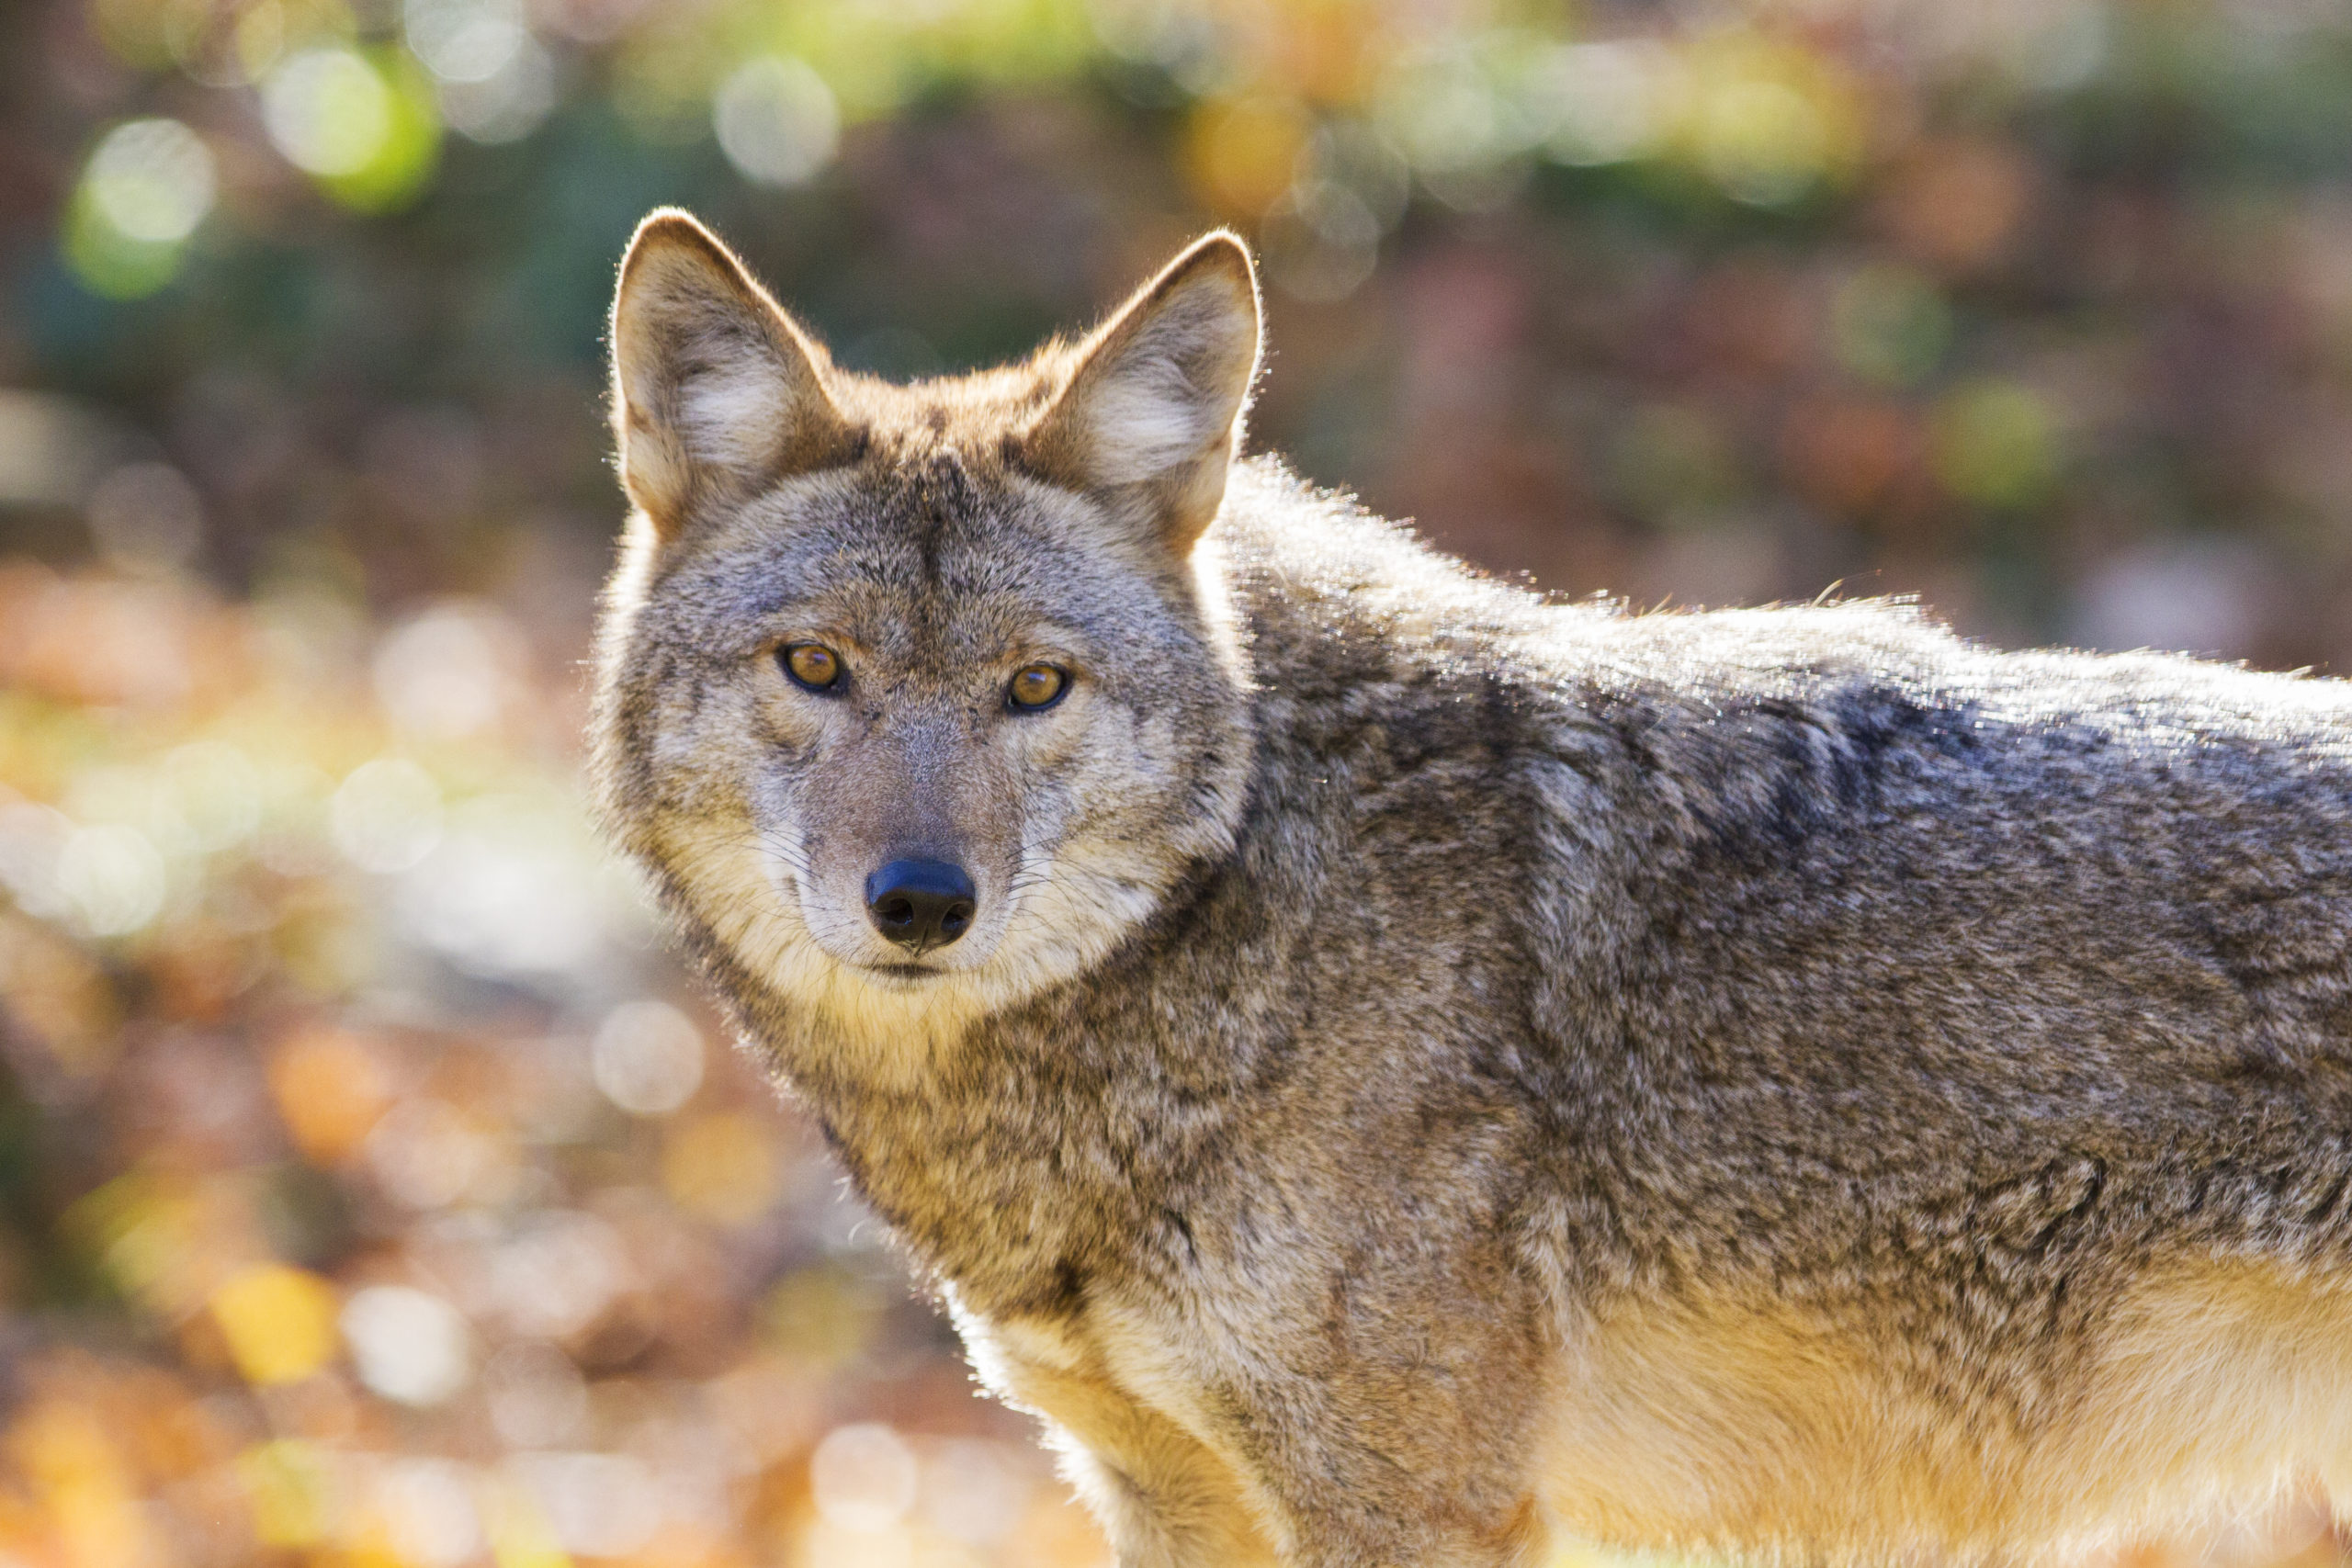 COYOTE ATTACK IN STANLEY PARK